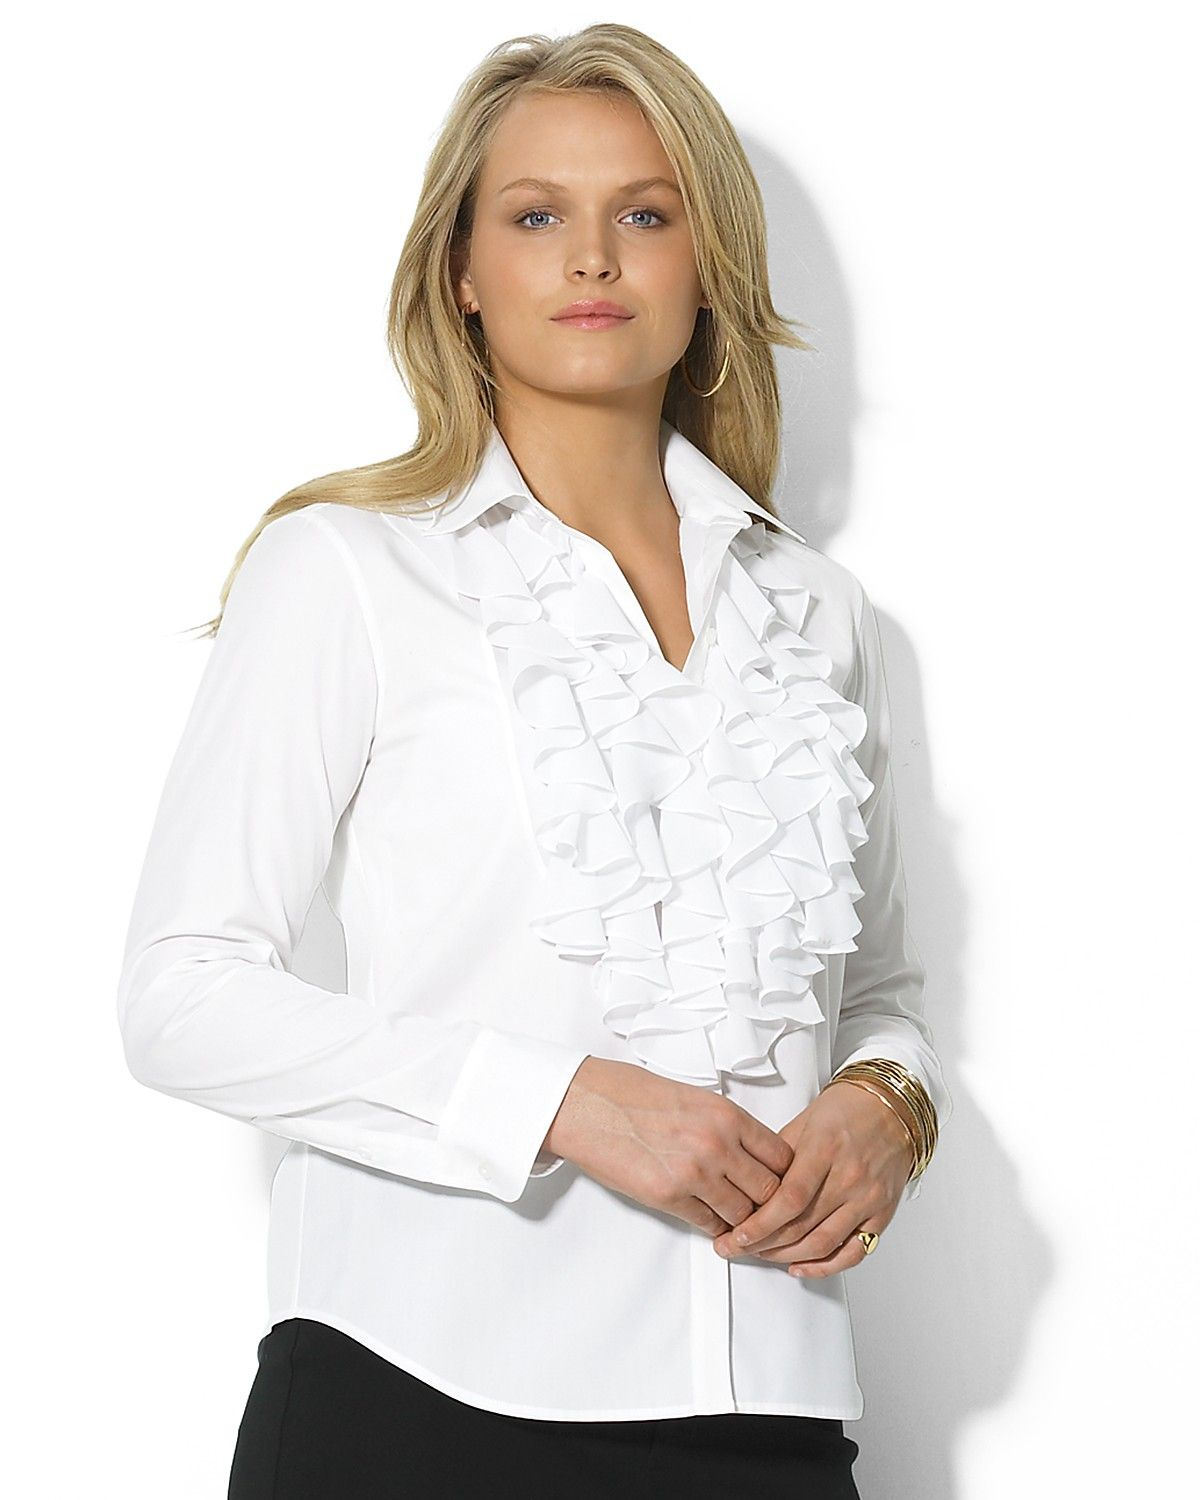 Find a Woman's White Ruffle Blouse, Plus Size White Ruffle Blouse and more at Macy's. Macy's Presents: The Edit - A curated mix of fashion and inspiration Check It Out Free Shipping with $49 purchase + Free Store Pickup.